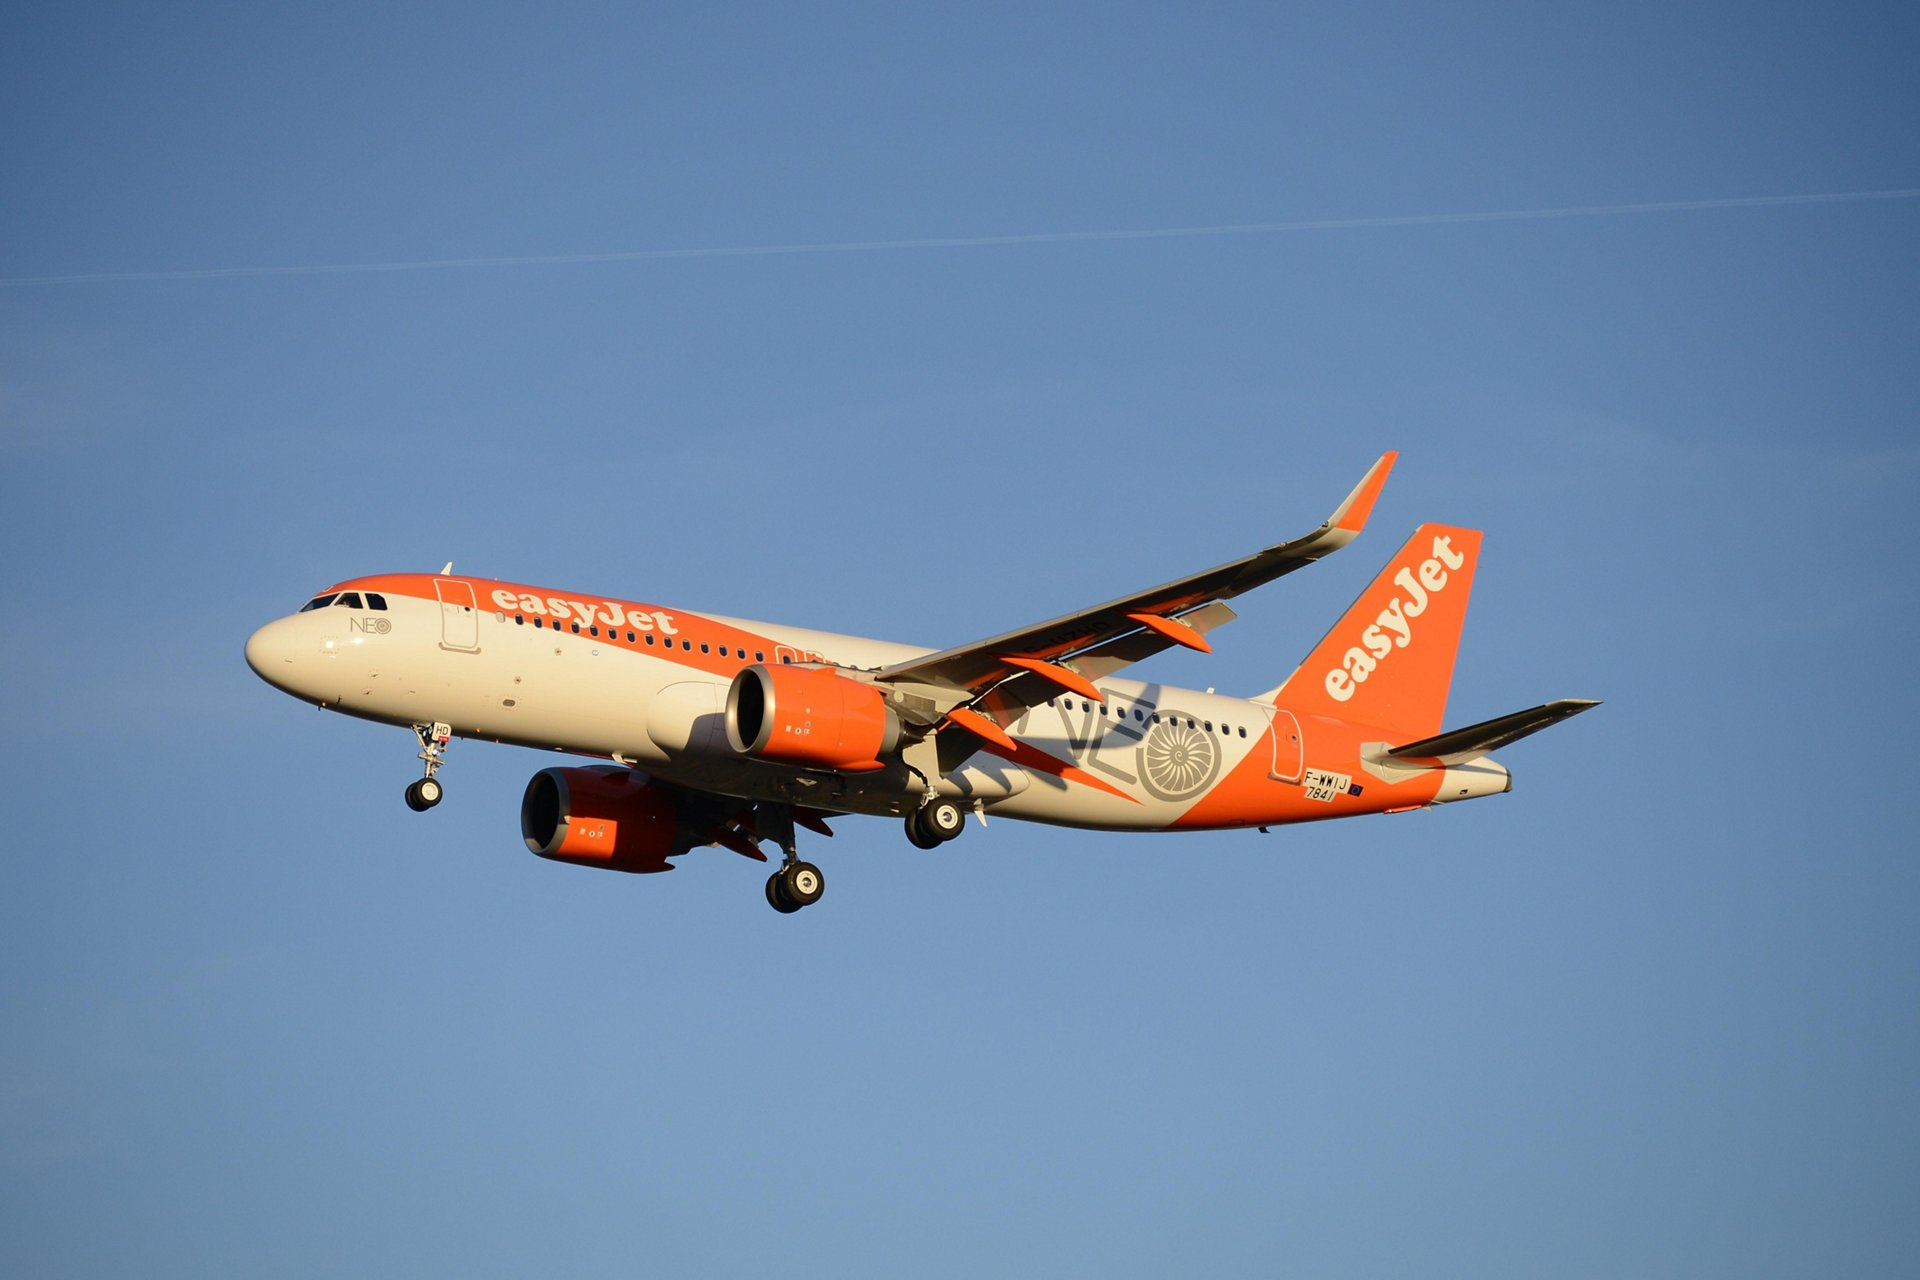 Exercising purchase rights to firm up orders with 17 additional A320neo aircraft, easyJet's combined bookings for Airbus' single-aisle NEO has increased to 147 – taking this airline's overall A320 Family orders to a total of 468